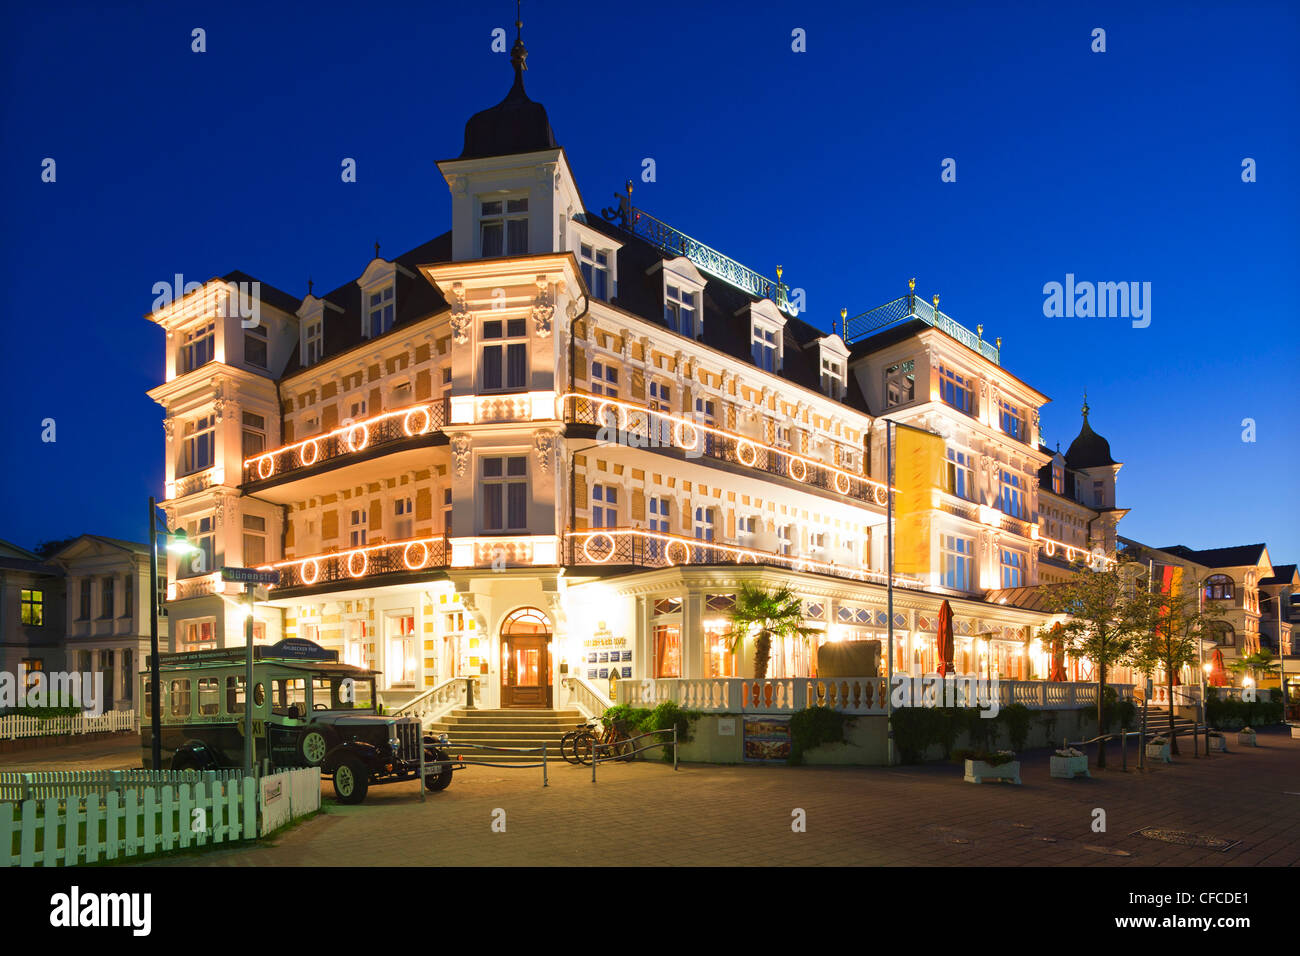 "Hotel ""Ahlbecker Hof"", Ahlbeck seaside resort, Usedom island, Baltic Sea, Mecklenburg-West Pomerania, Germany - Stock Image"